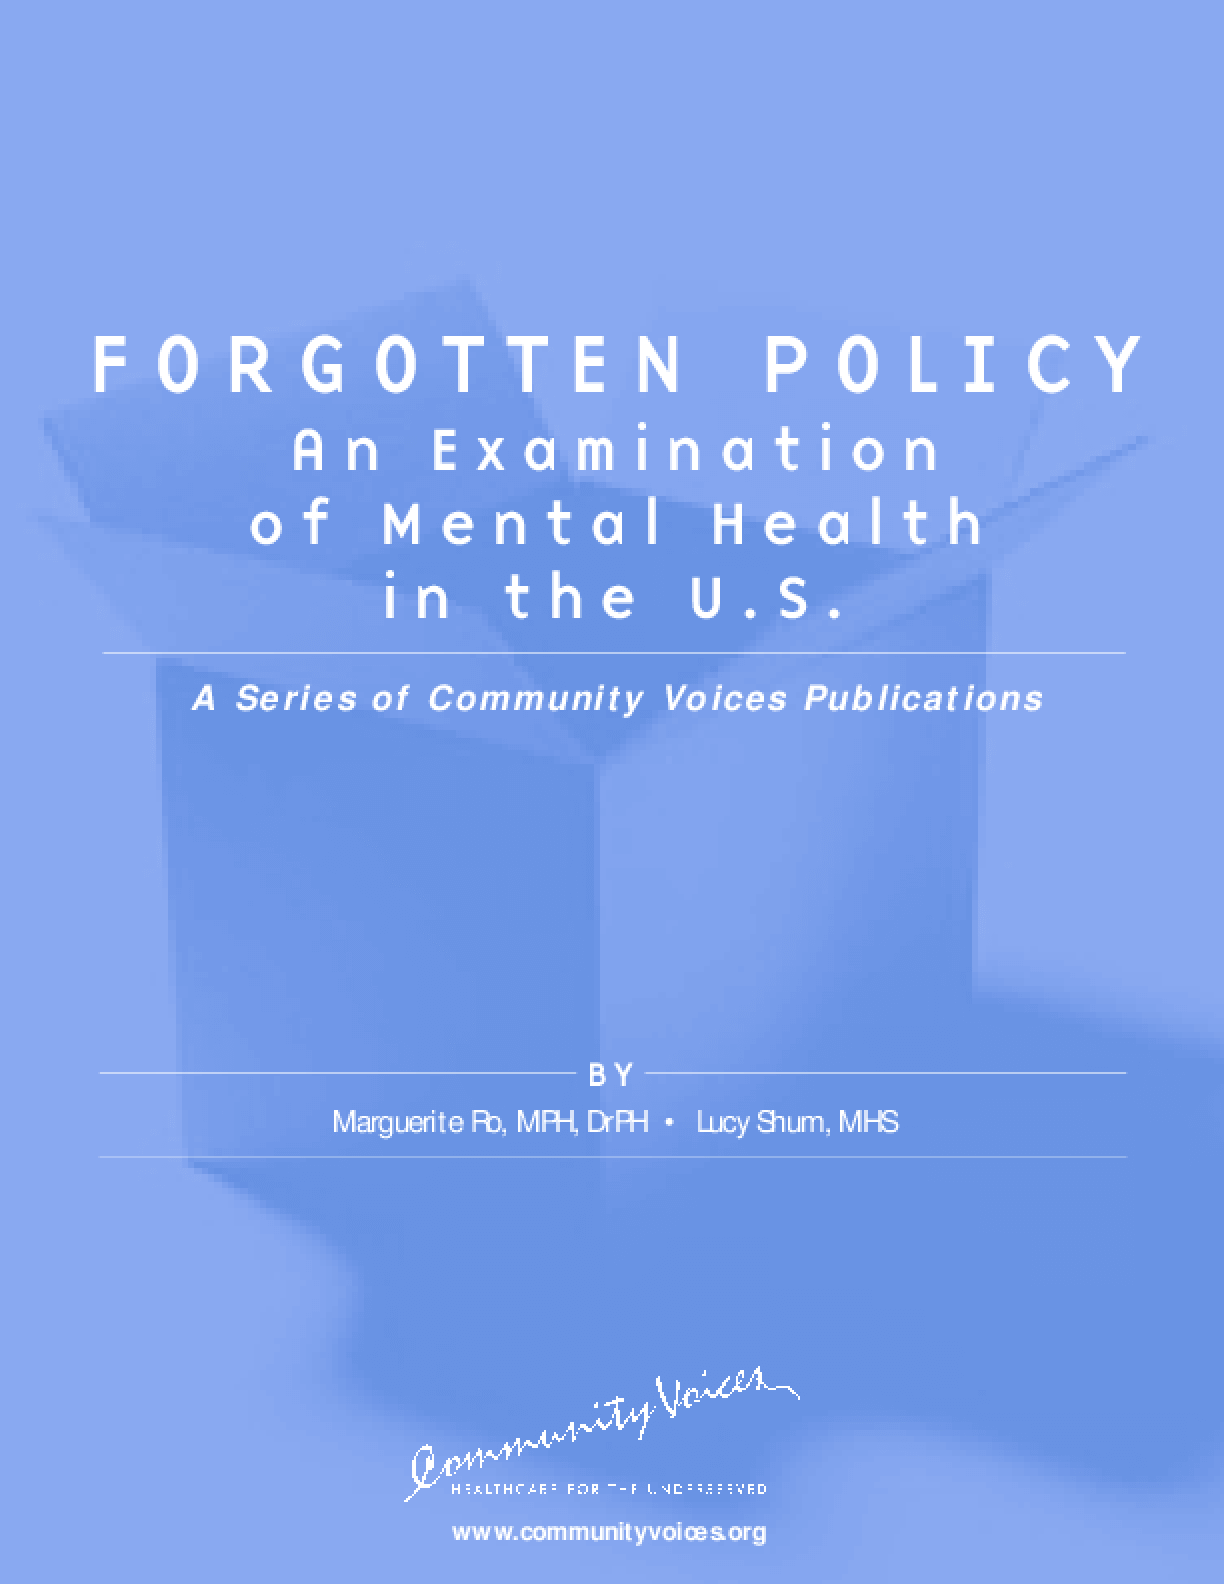 Forgotten Policy: An Examination of Mental Health in the U.S.